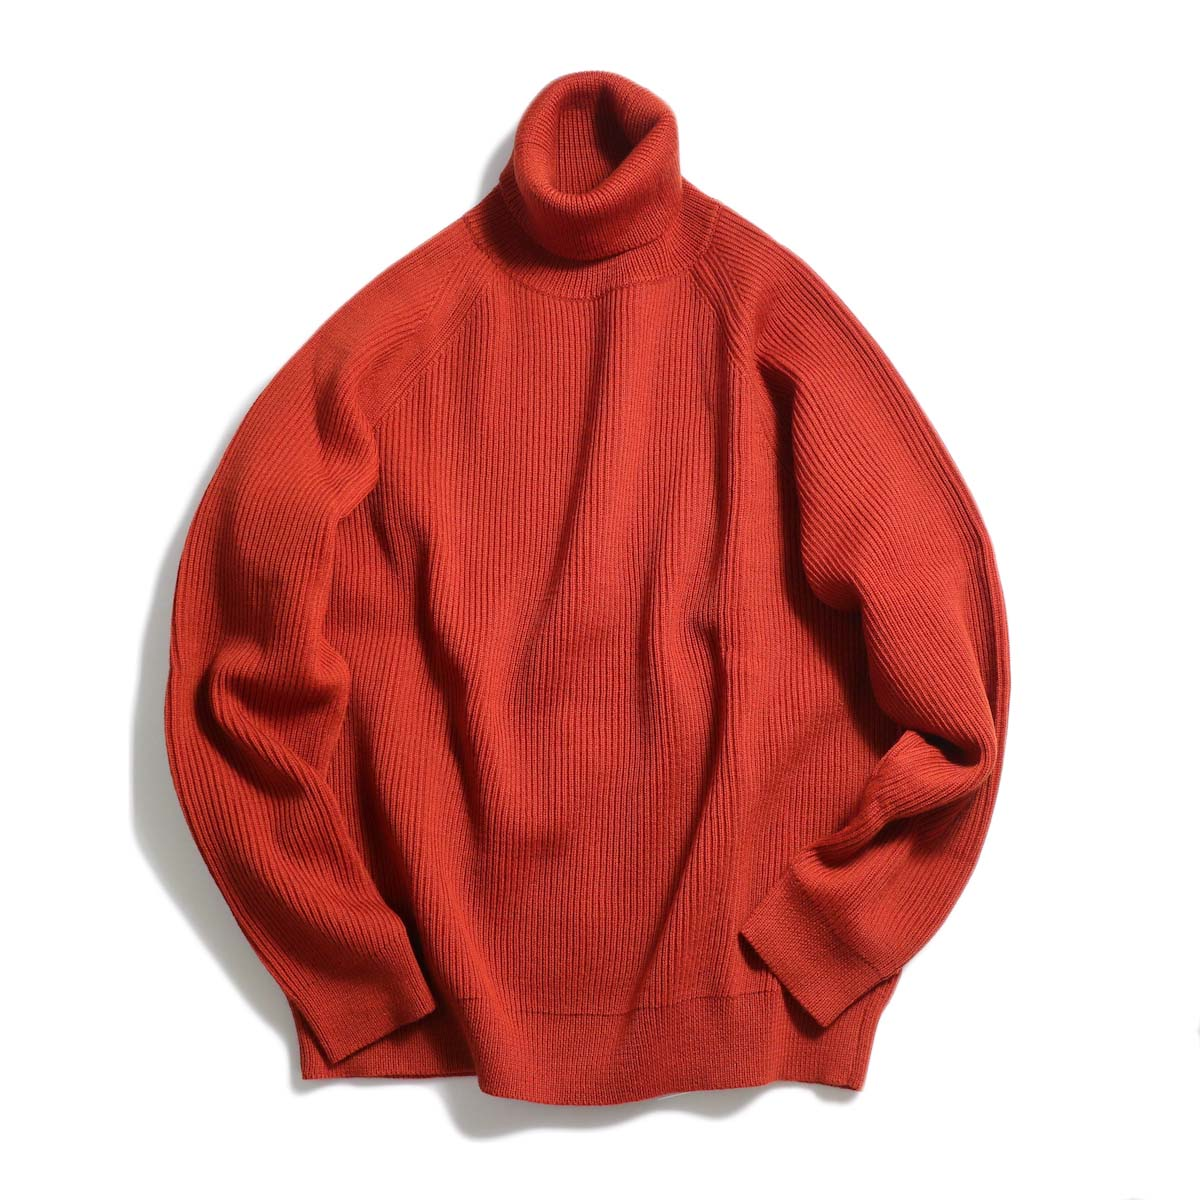 Living Concept / LOW GAUZE TURTLENECK KNIT -RED 正面